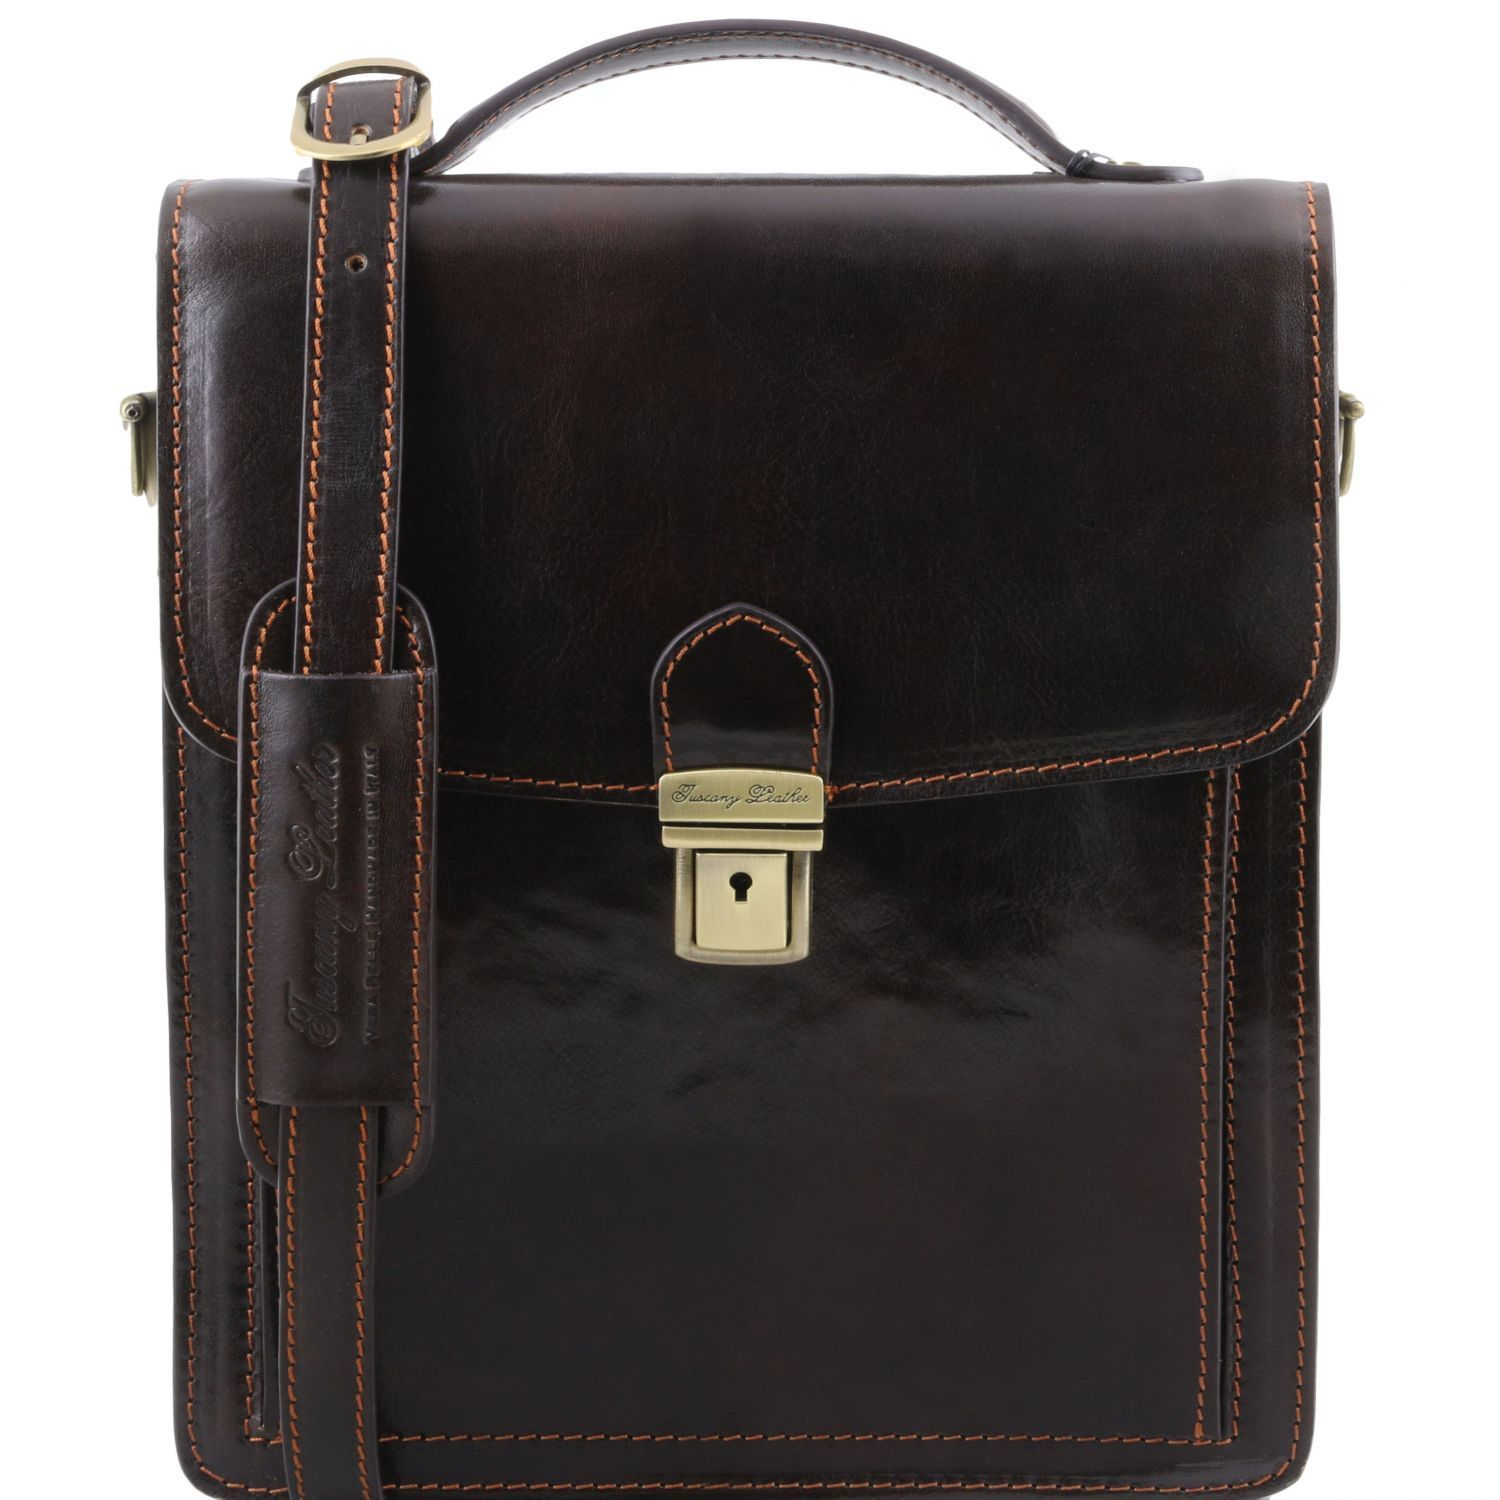 Tuscany Leather 1st Class 'David' Men's Leather Crossbody Bag - Large Messenger Bag Tuscany Leather Dark Brown